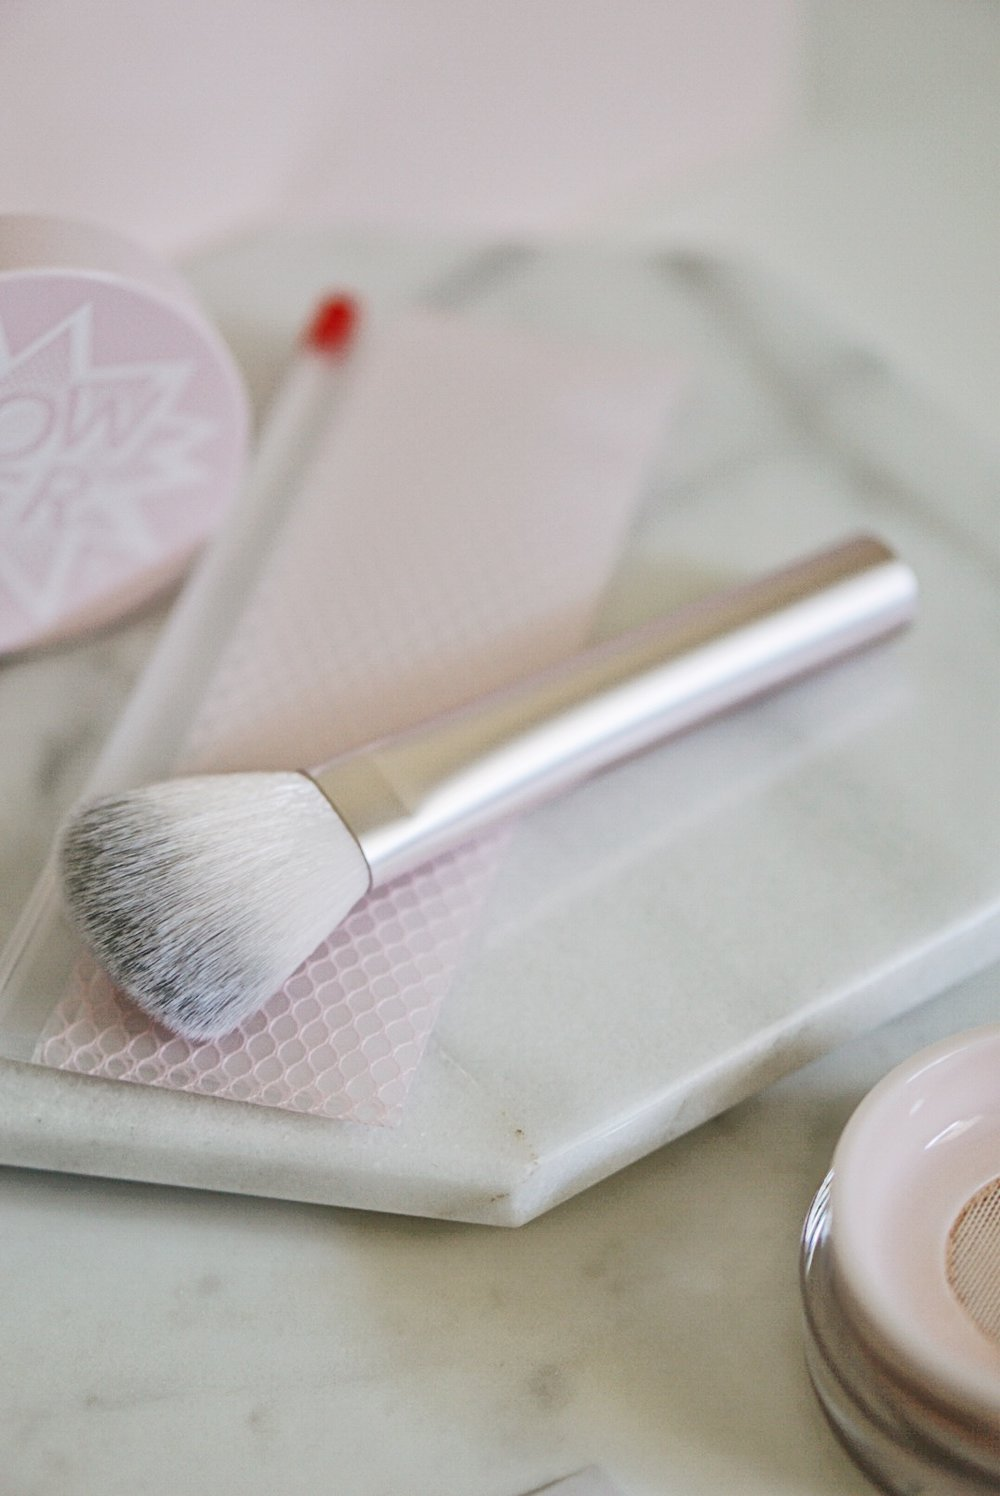 Glossier Makeup, Wowder Powder Brush Duo, Glossier Rep Discount Code